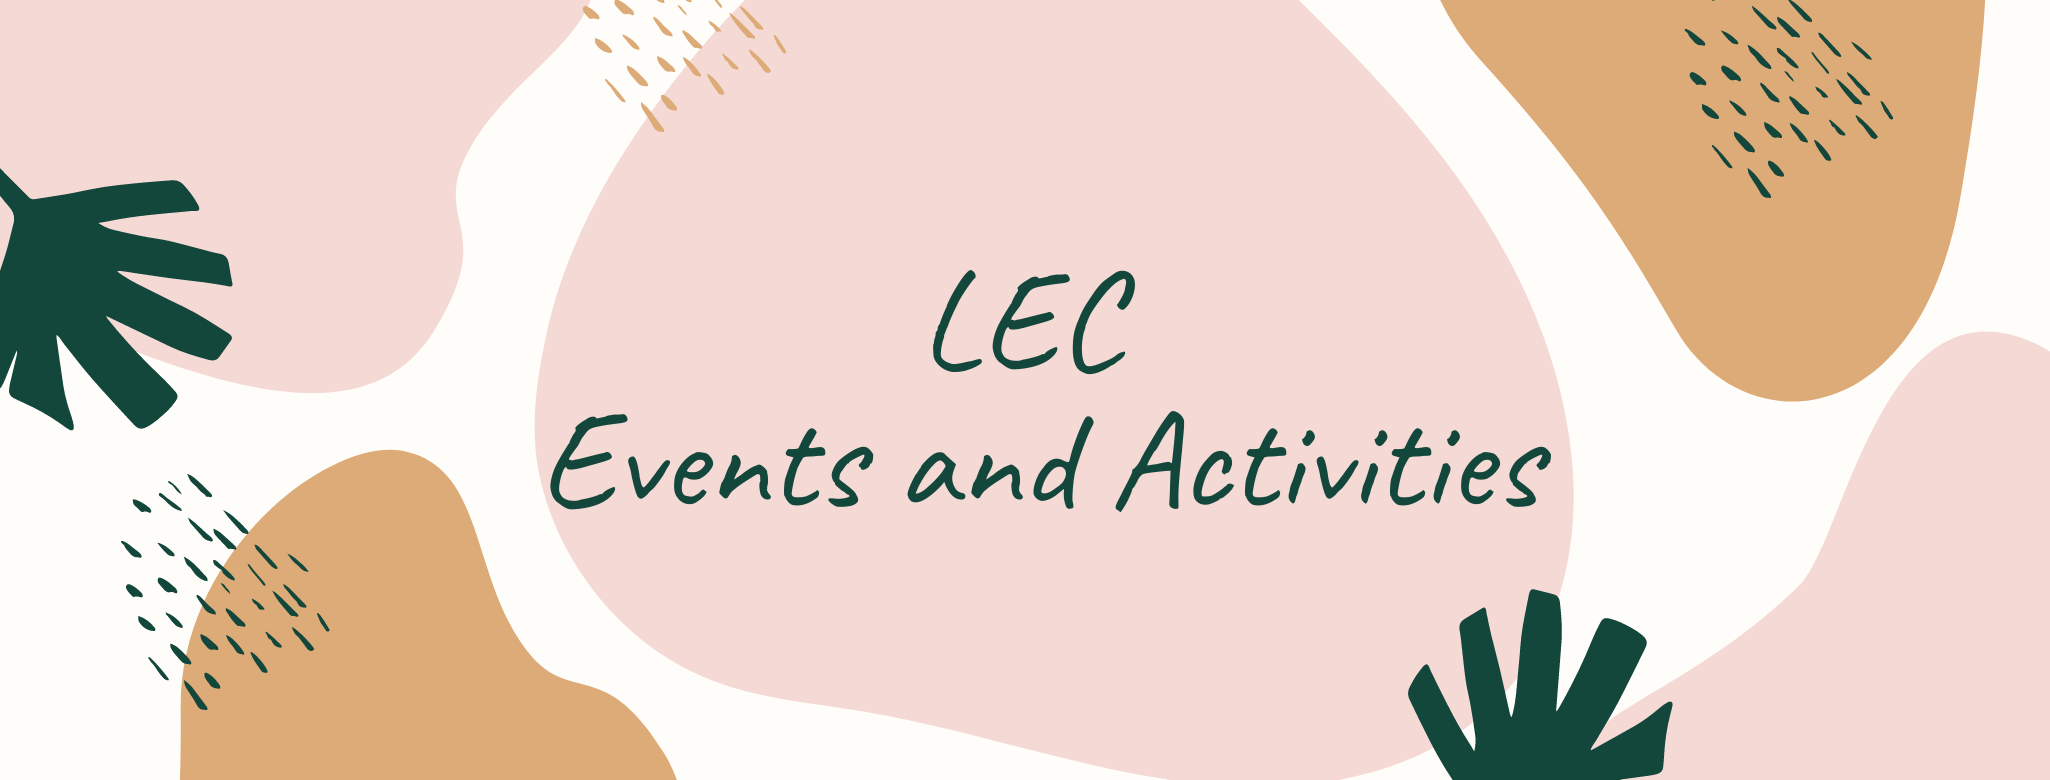 Events and Activities.png